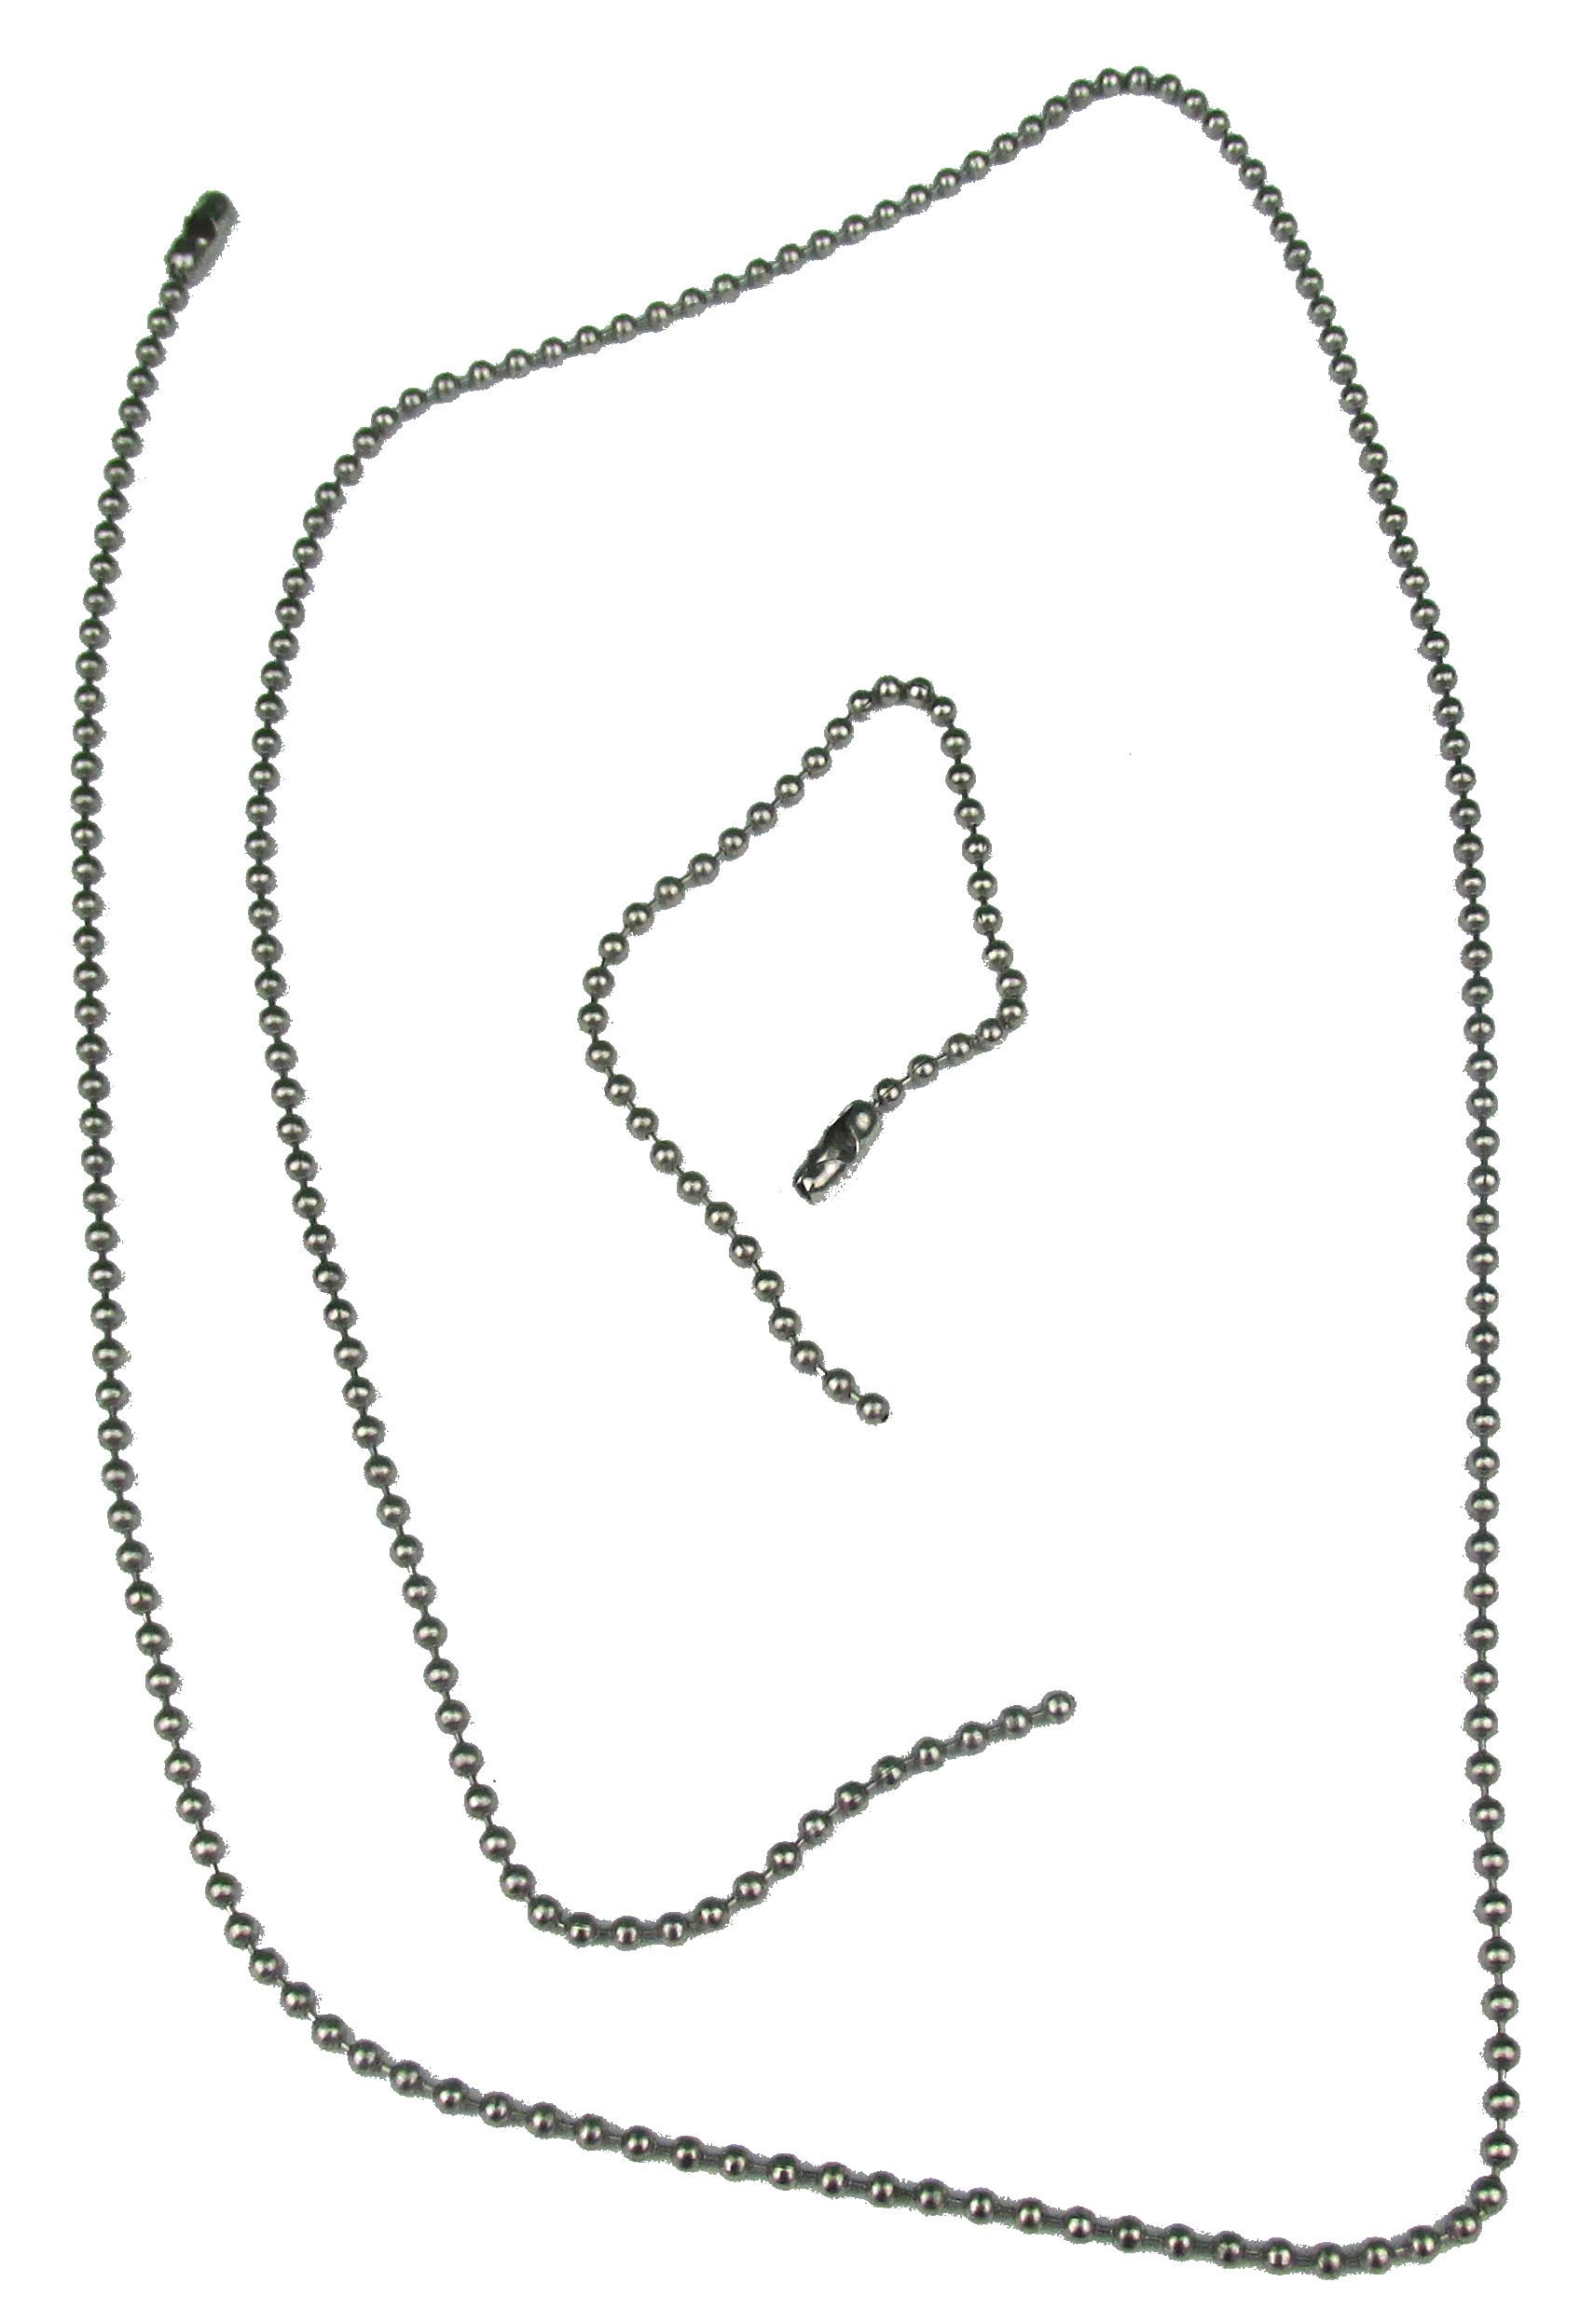 Dog Tag Chain Set - Silver - Quantity 1,000 by BC (Image #1)